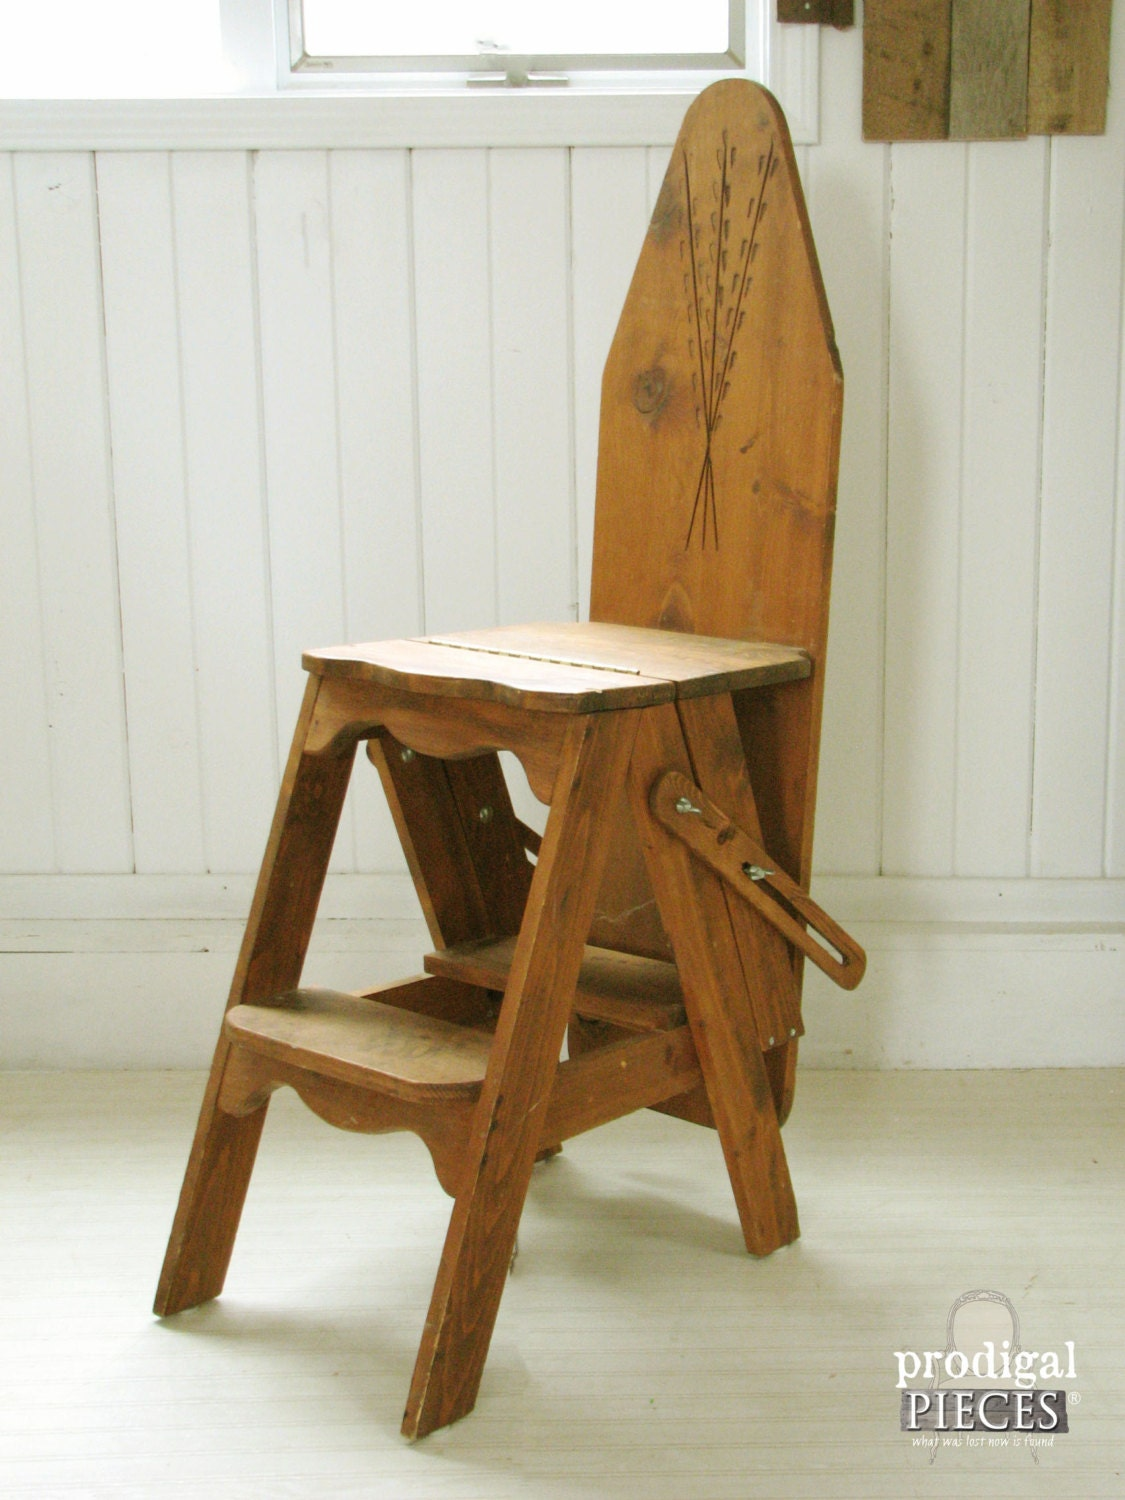 Hand Carved Rustic Unique Folding Ironing Board Chair Step